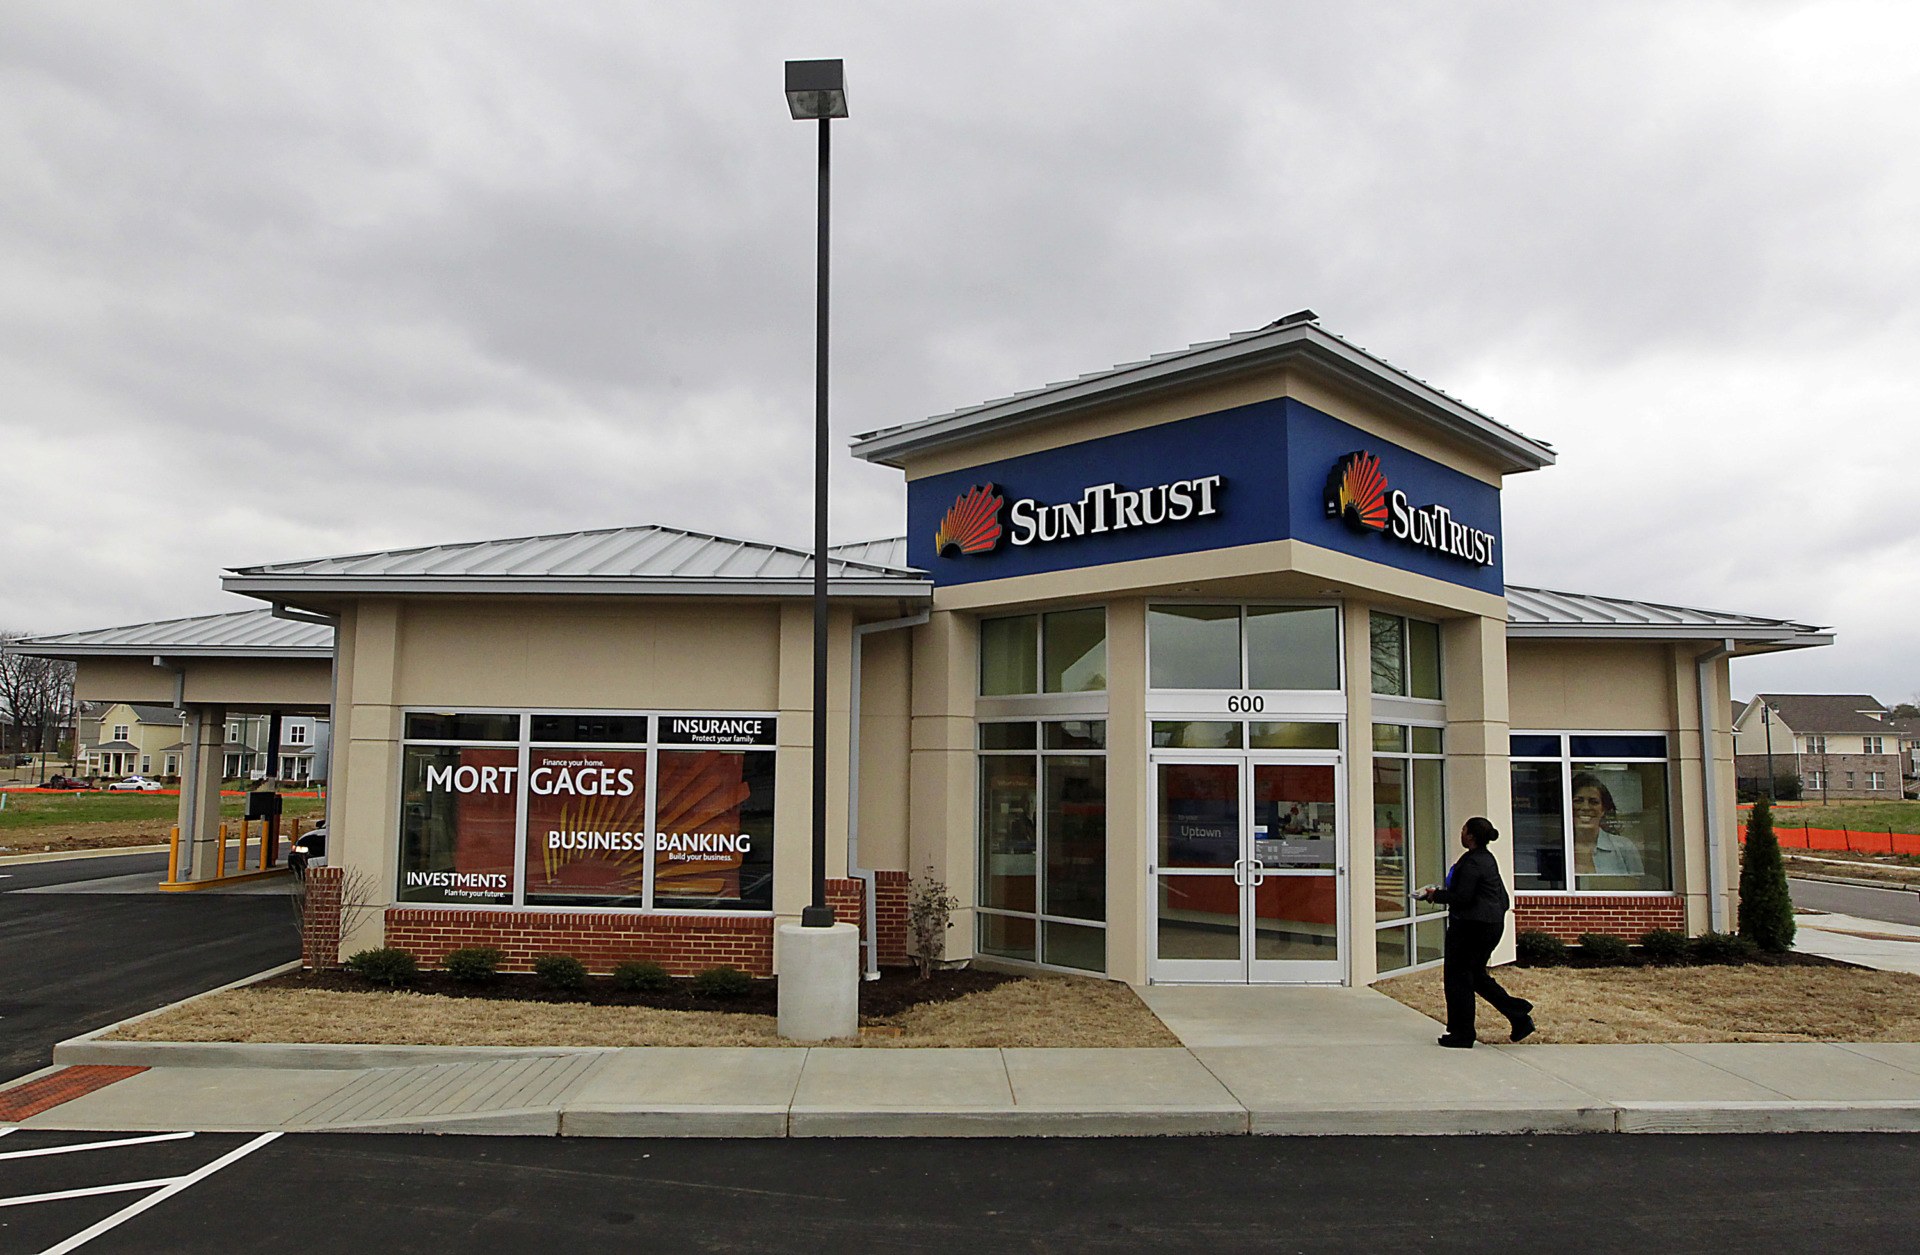 <strong>SunTrust Banks and BB&T Corp. announced Thursday that BB&T will purchase SunTrust for $28 billion in an all-stock deal, creating the sixth-largest U.S. bank based on assets and deposits.</strong> (Daily Memphian file)